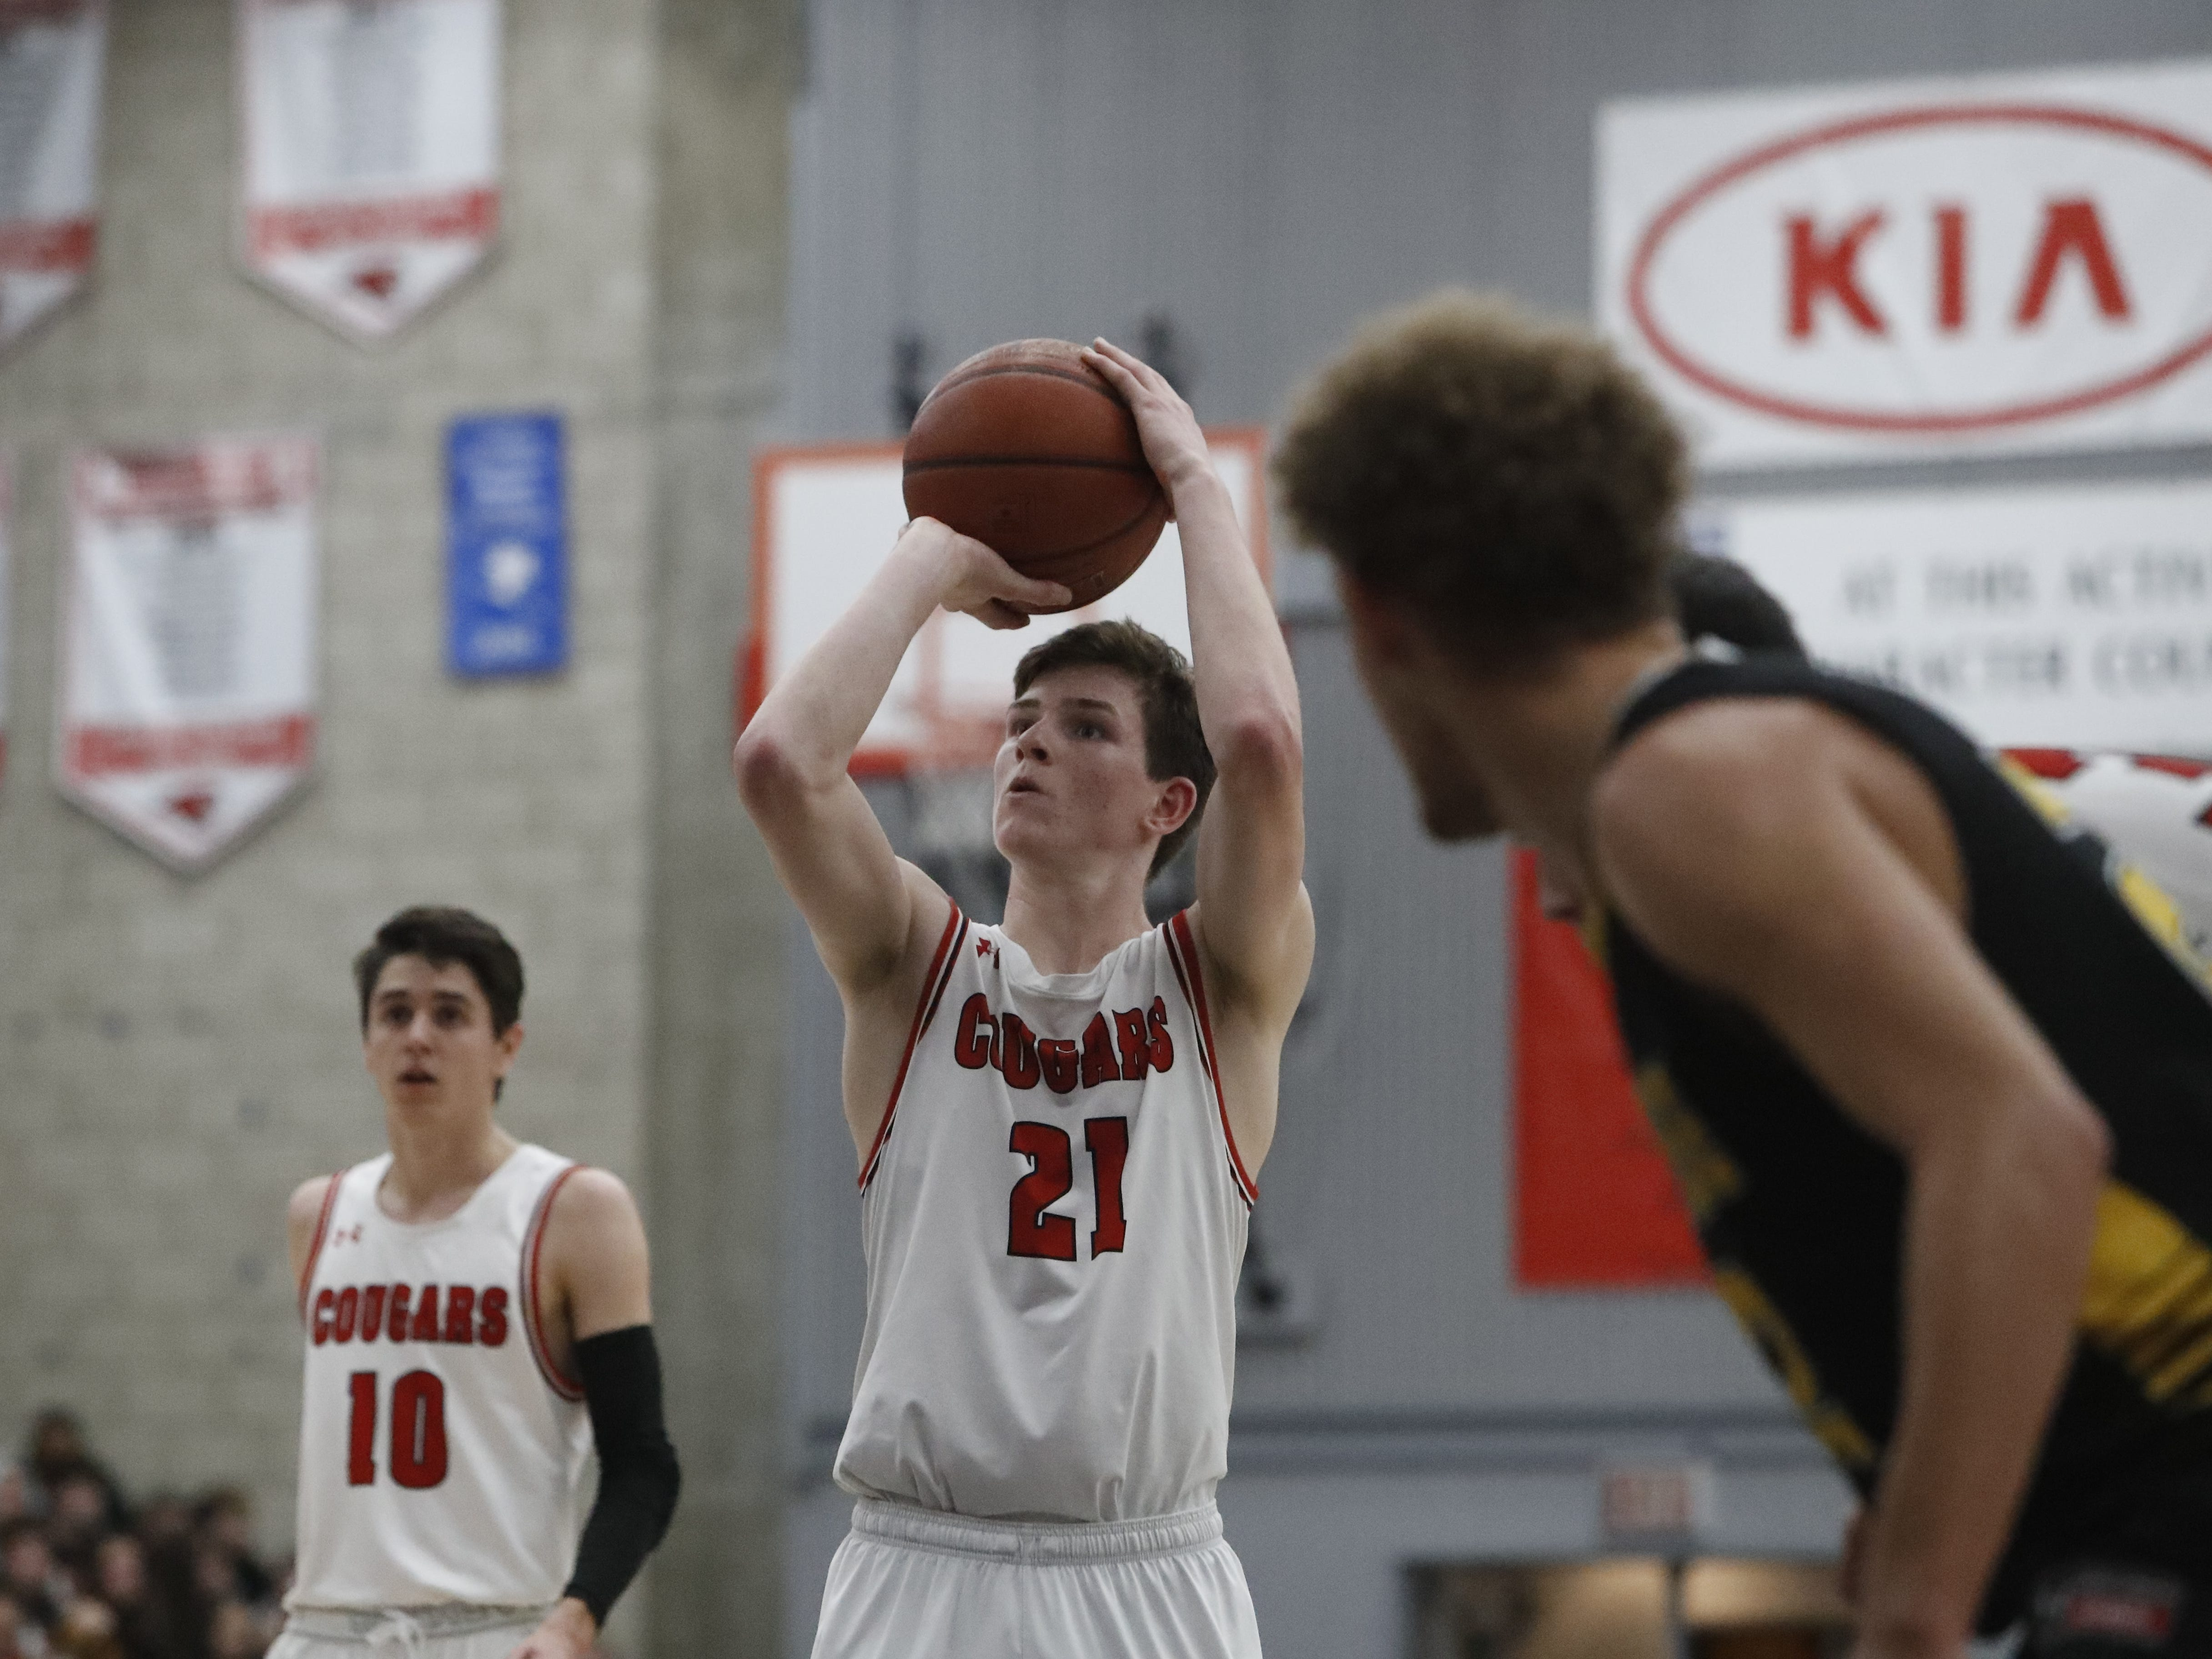 Foothill junior Luke Lindsey shoots a free throw during the Cougars' 55-50 win over the Hornets in the Division III Northern Section semifinals on Wednesday, Feb. 20.